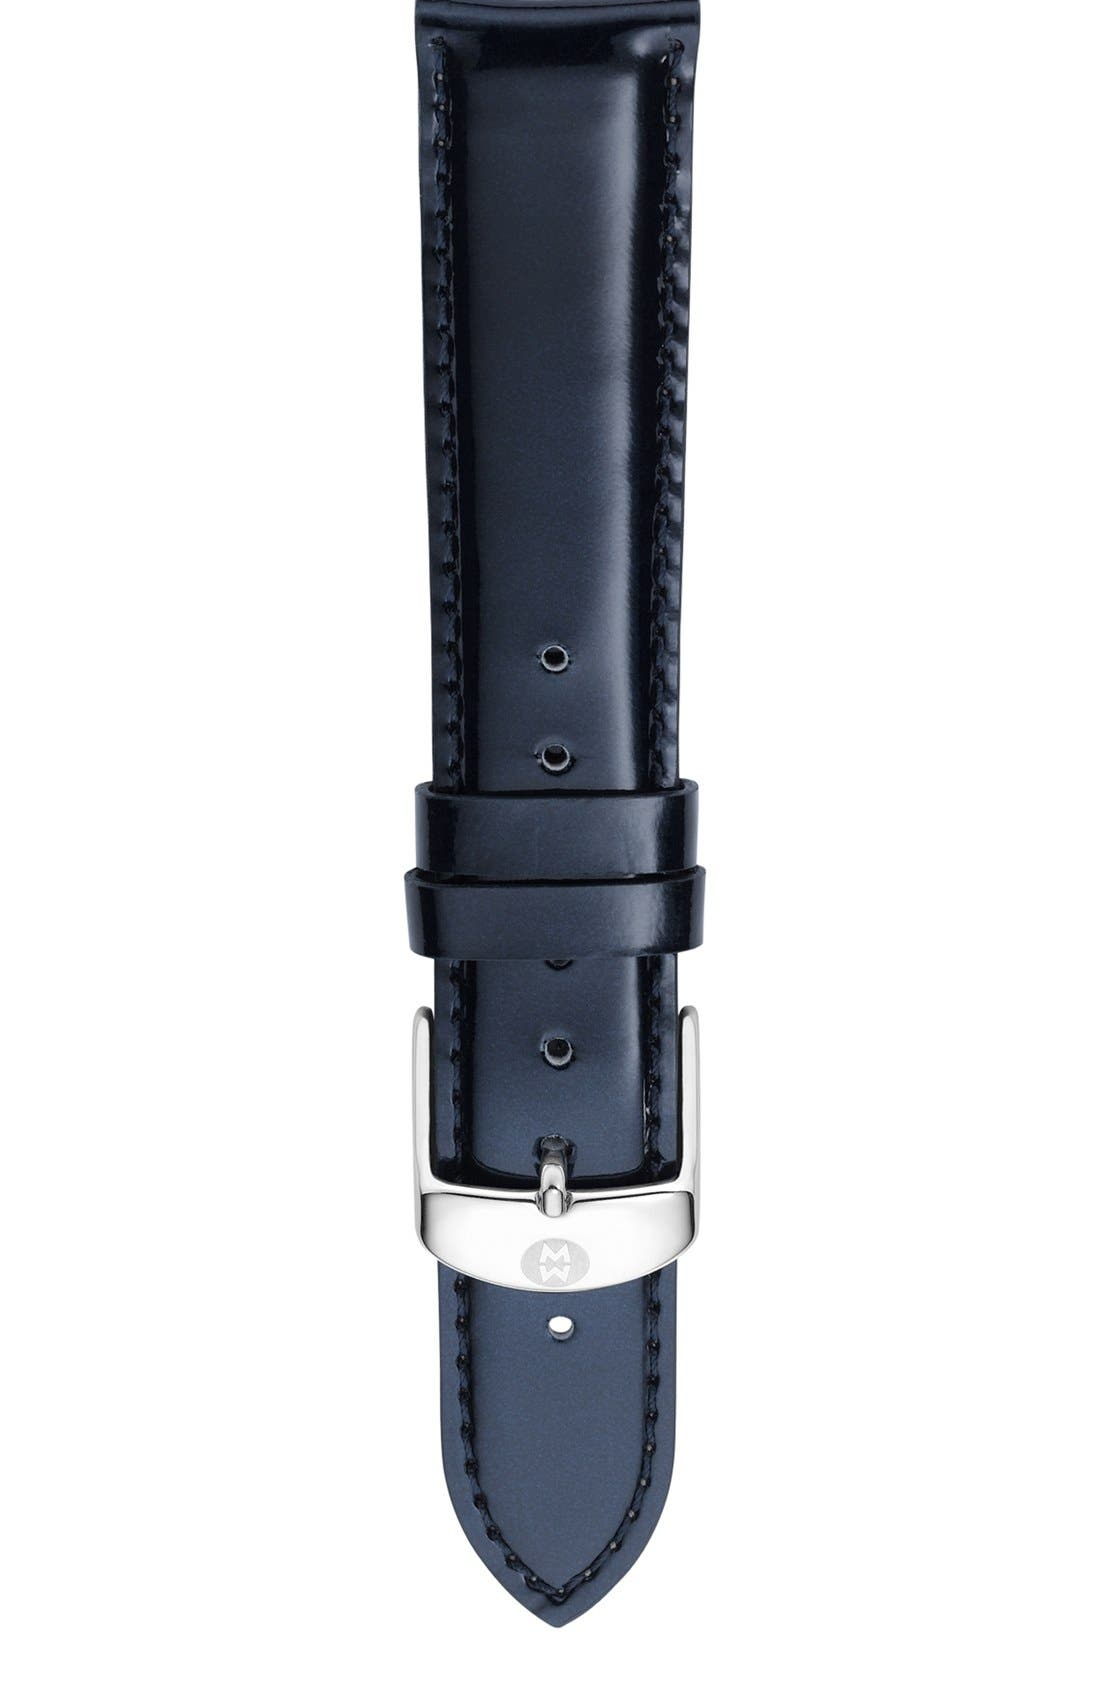 Alternate Image 1 Selected - MICHELE 'Deco Diamond' Watch Case & 18mm Patent Leather Strap